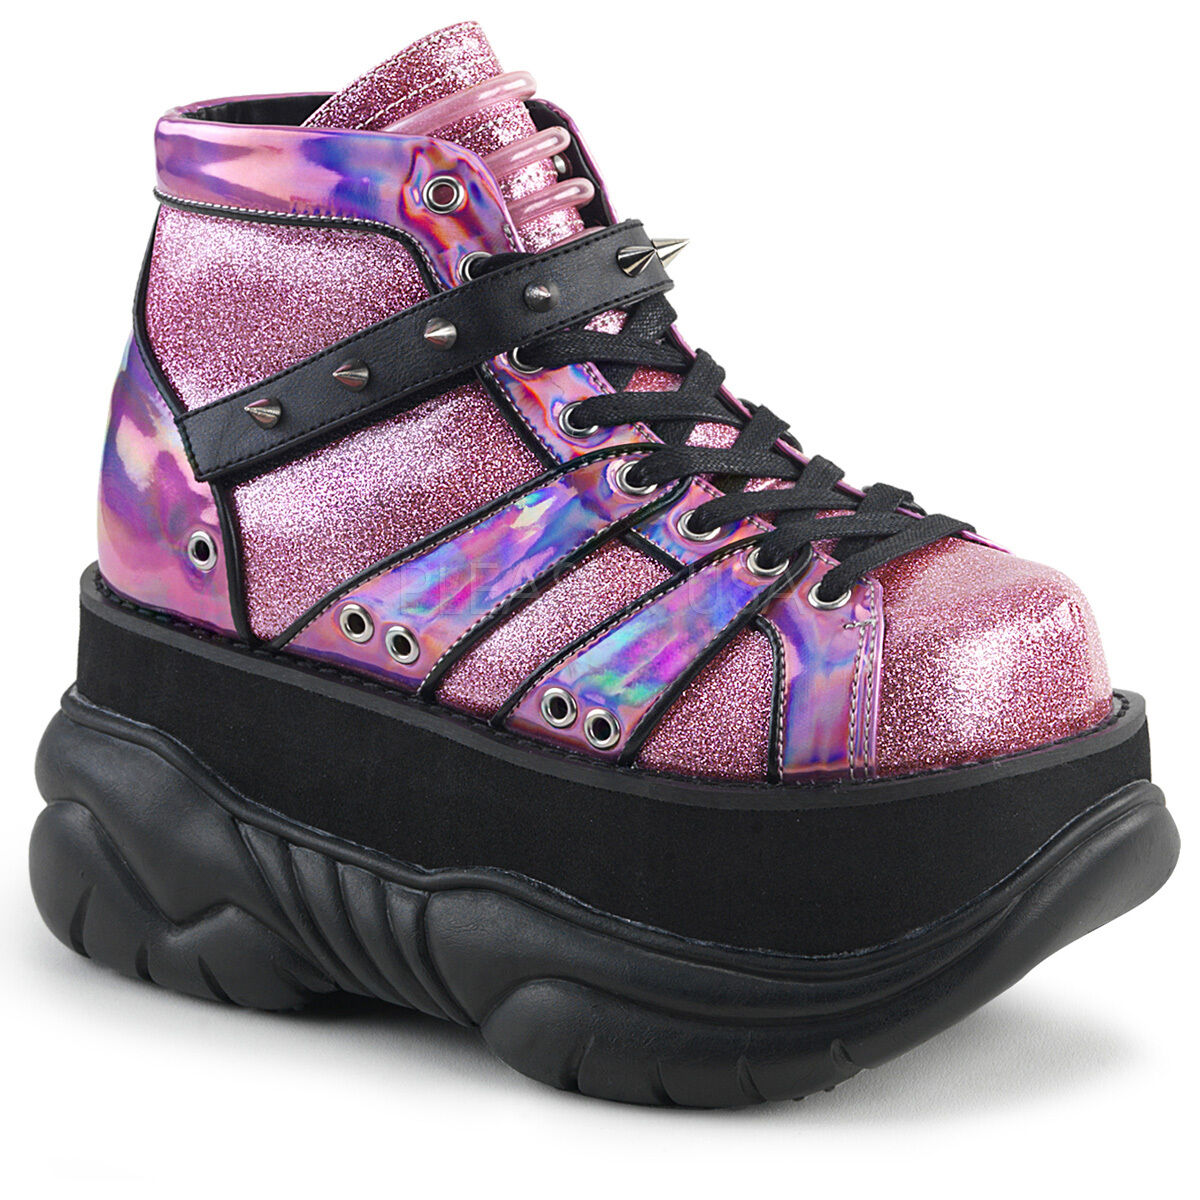 Demonia 3  Platform Pink Glitter Hologram Spiked Boots shoes Club Cyber 4-12